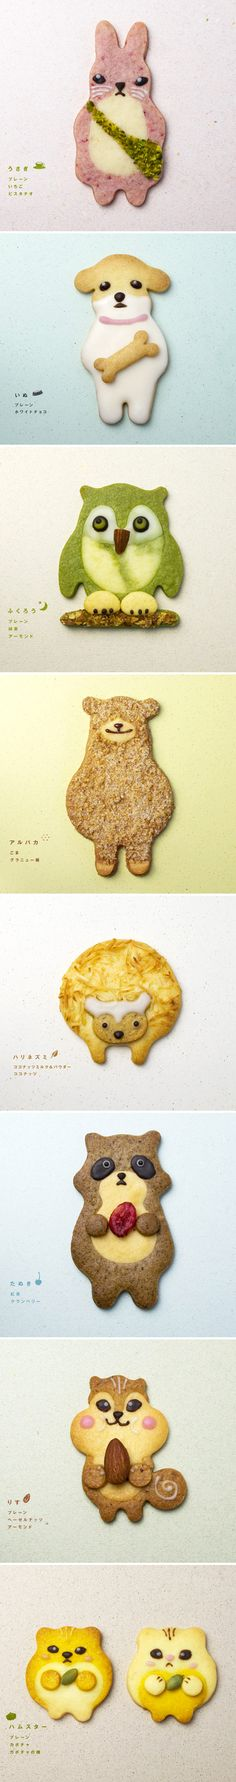 art that you can eat! cookies by henteco